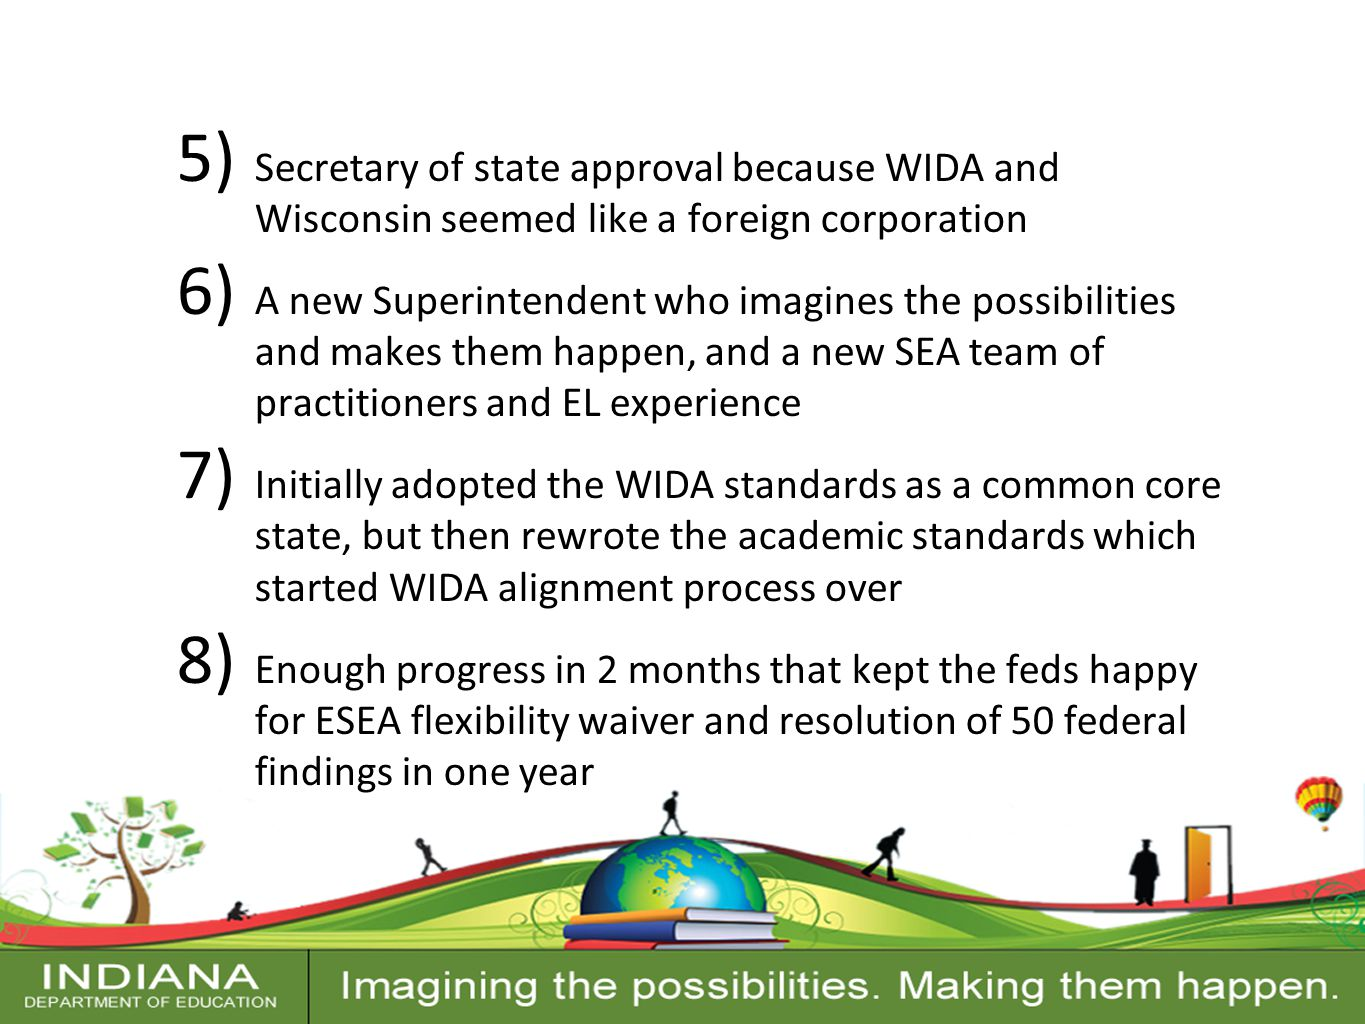 Contact Information 5) Secretary of state approval because WIDA and Wisconsin seemed like a foreign corporation 6) A new Superintendent who imagines the possibilities and makes them happen, and a new SEA team of practitioners and EL experience 7) Initially adopted the WIDA standards as a common core state, but then rewrote the academic standards which started WIDA alignment process over 8) Enough progress in 2 months that kept the feds happy for ESEA flexibility waiver and resolution of 50 federal findings in one year